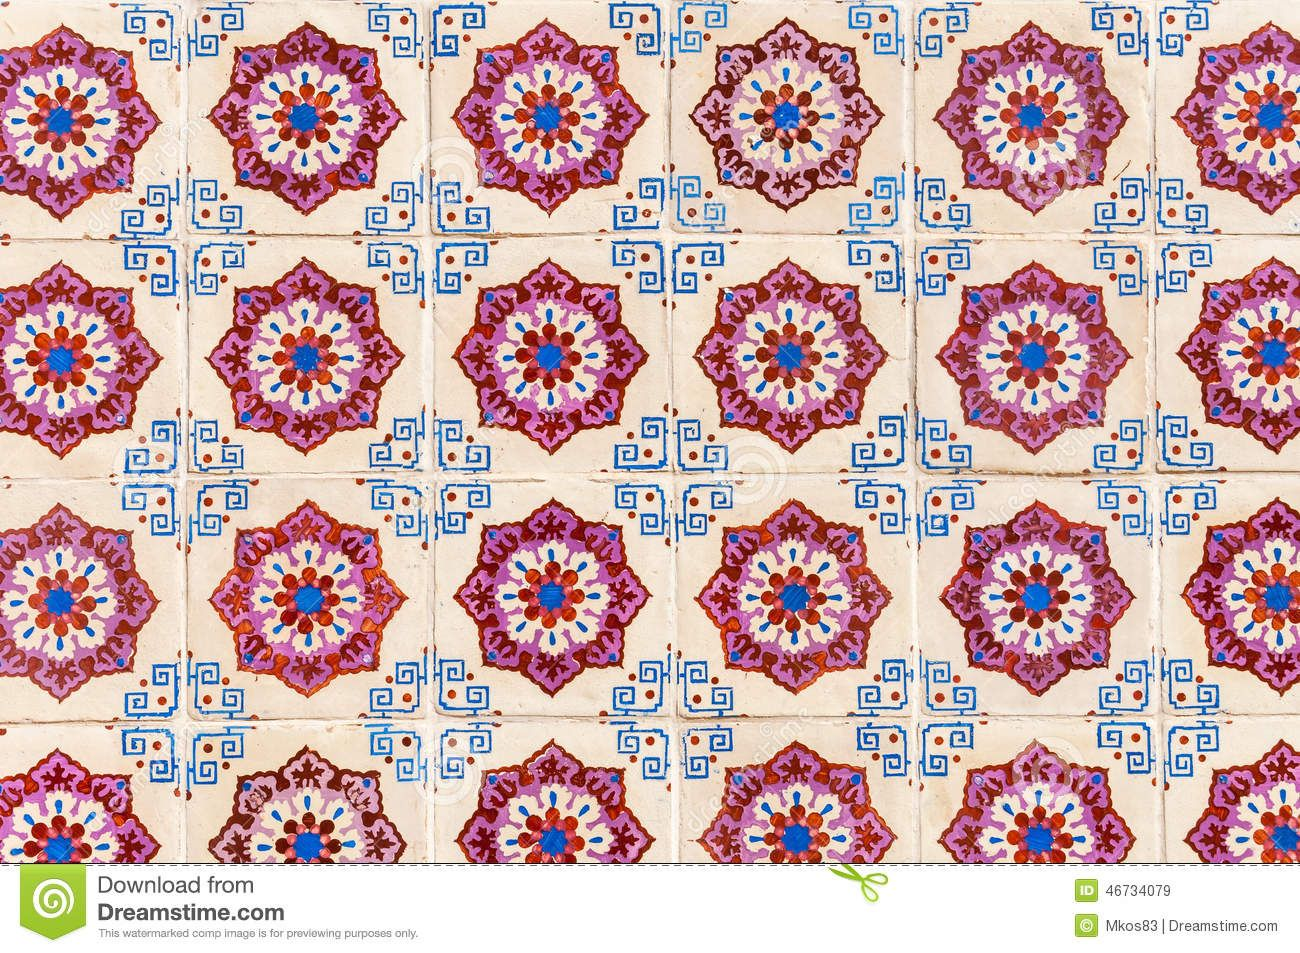 Background made of portuguese ceramic tiles called azulejos background made of portuguese ceramic tiles called azulejos download from over 39 million high quality dailygadgetfo Gallery